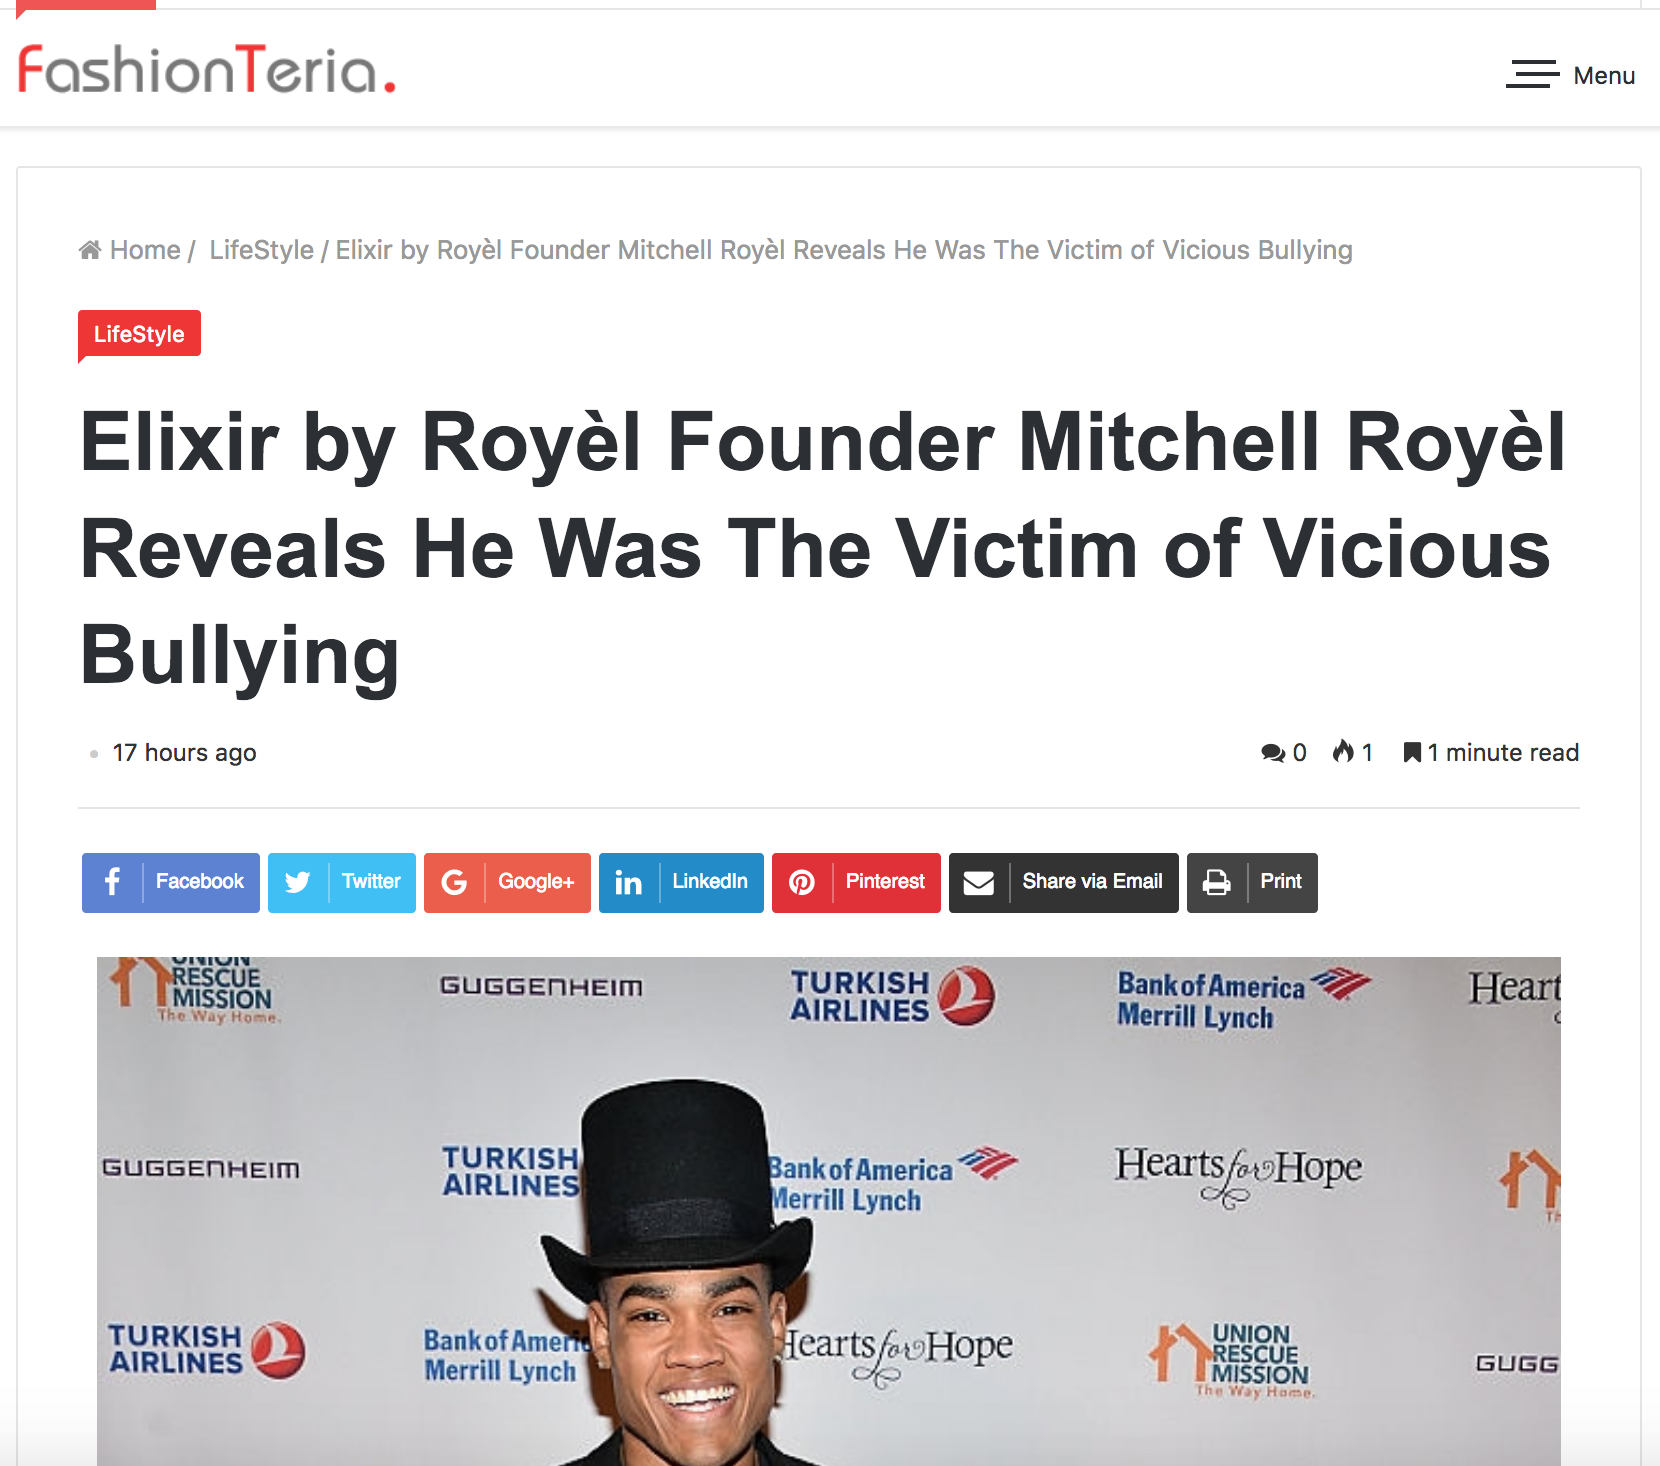 """Elixir by Royèl Founder Mitchell Royèl Reveals He Was The Victim of Vicious Bullying - Add Mitchell Royèl (born Mitchell Carlisle Abbott) to the growing list of millennials that have survived periods of reckless bullying.On February 12th, 2019, Royèl posted to social media about a dark period in his life """"many moons ago,"""" where he was deeply involved with a group of people who """"degraded, disrespected and humiliated"""" him on a regular basis."""